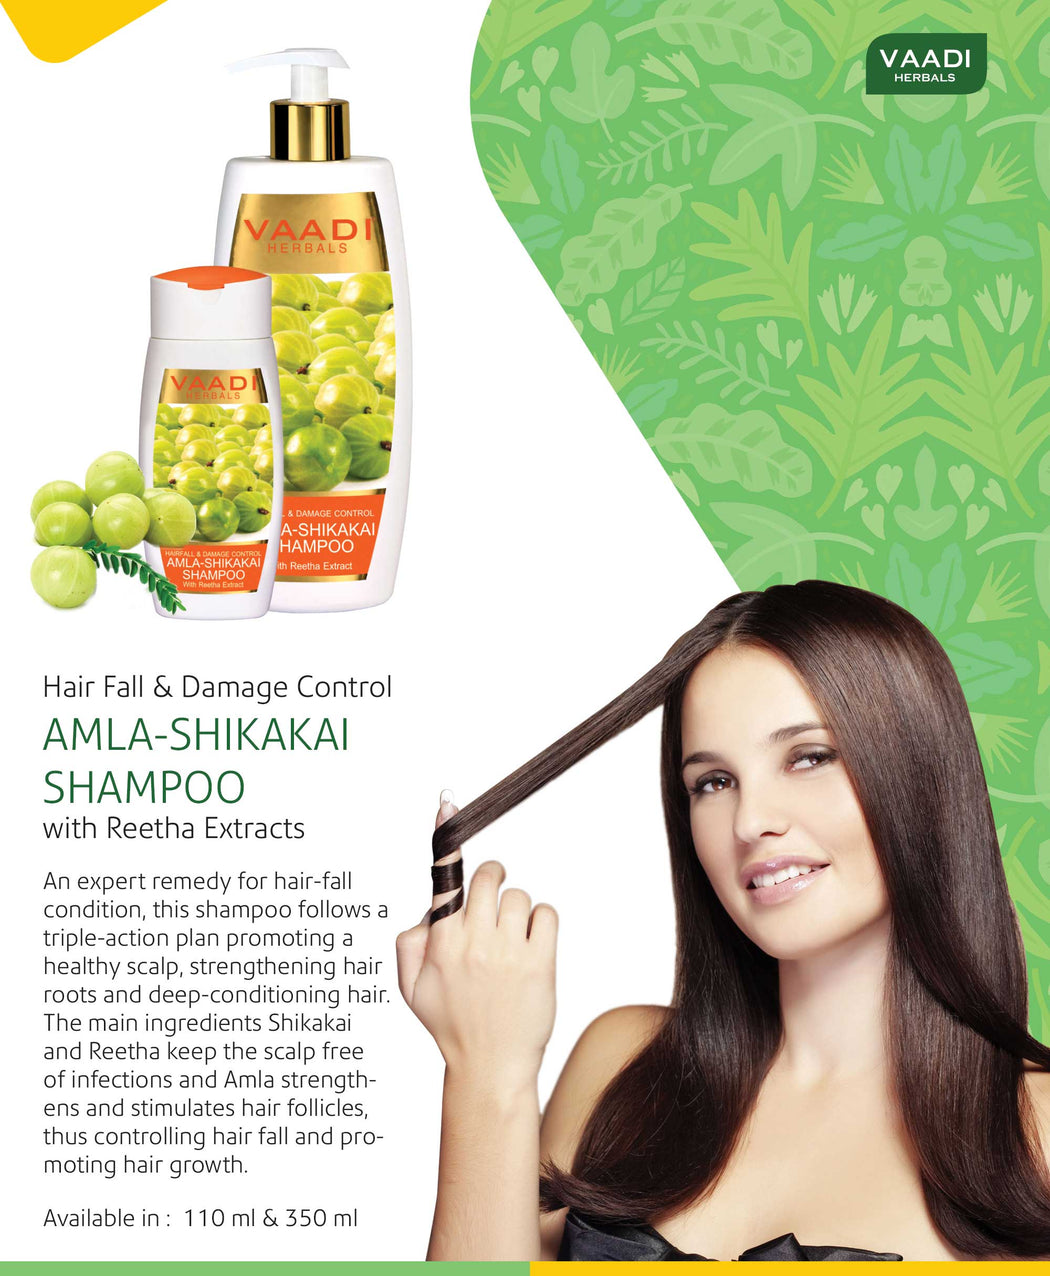 Hairfall & Damage Control Organic Shampoo (Indian Gooseberry Extract) - Promotes Hair Growth - Adds Shine to Hair (3 x 110 ml/4 fl oz)